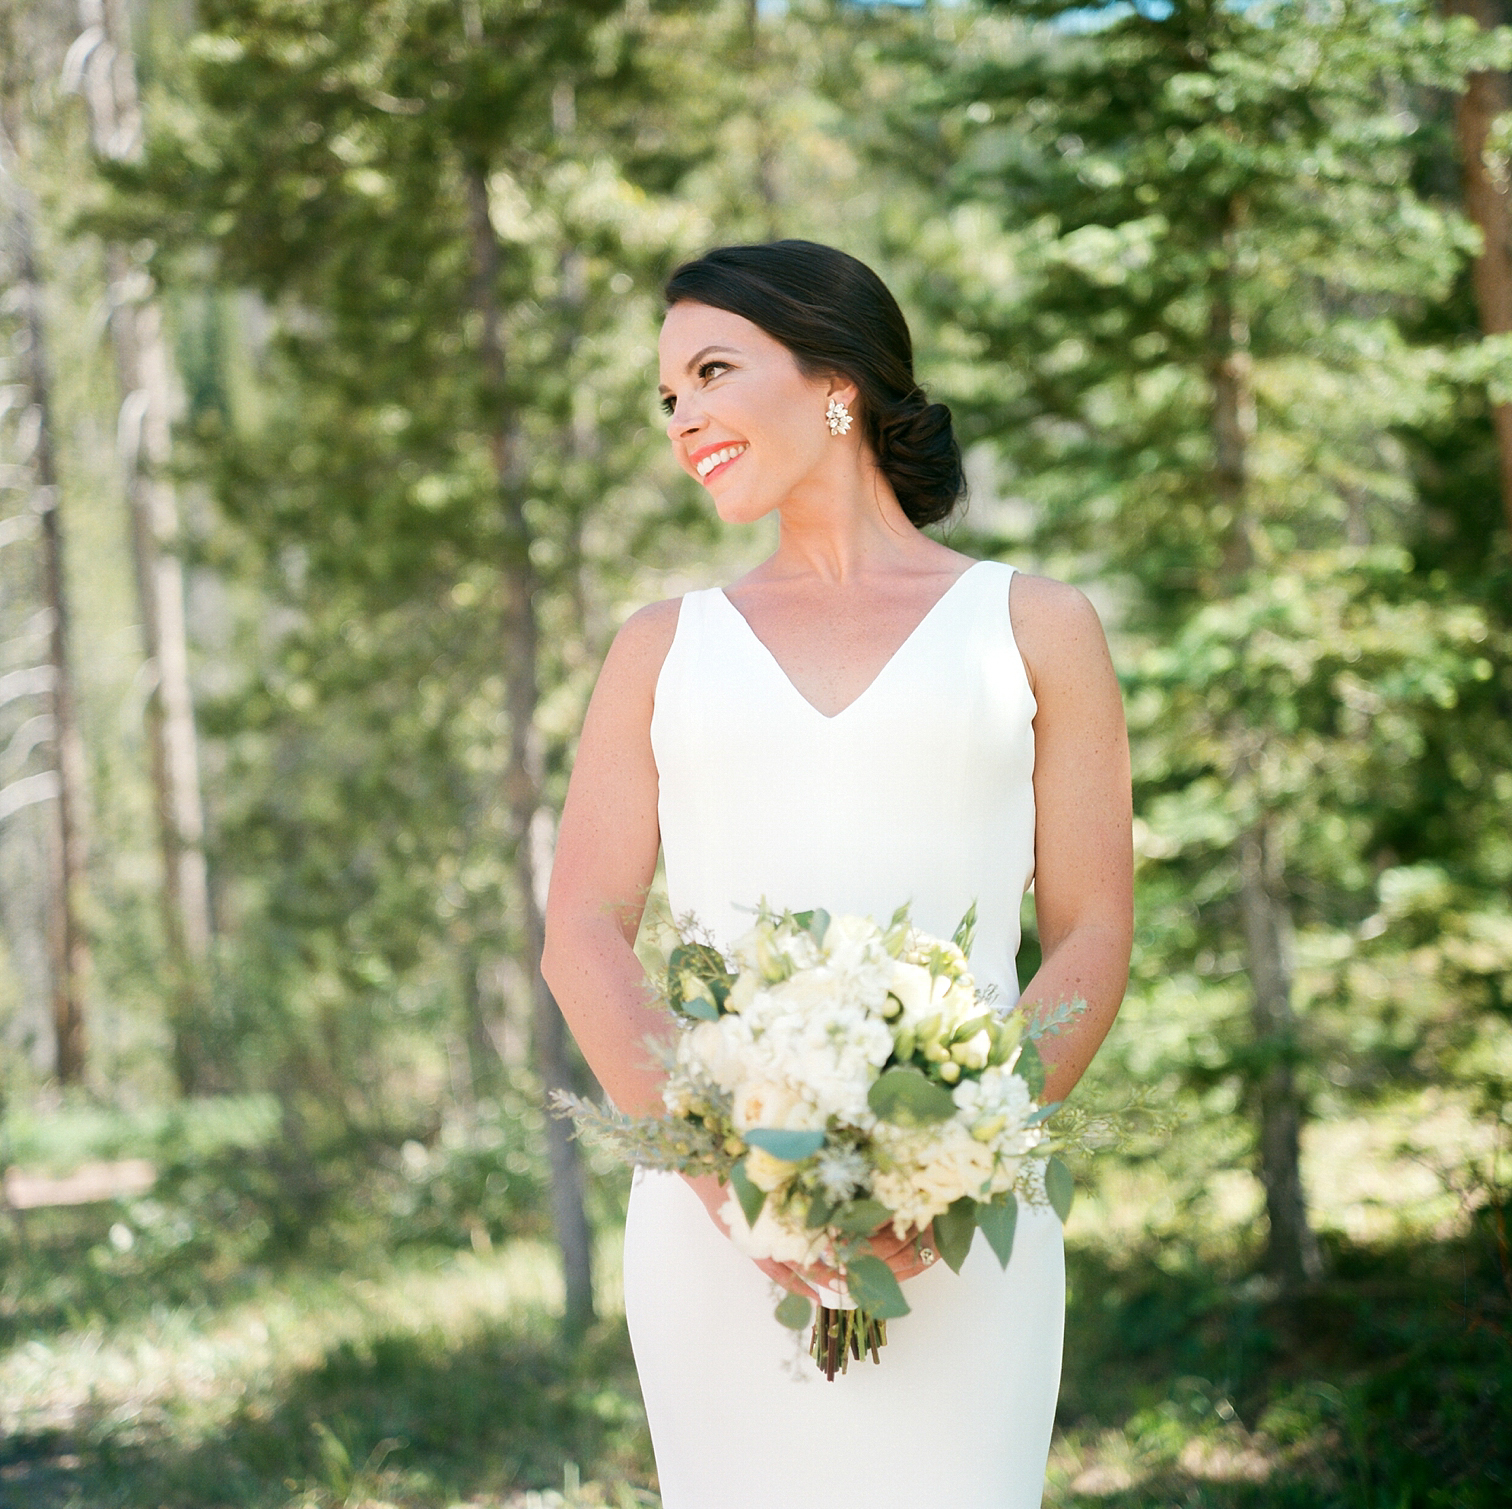 Vail Colorado Wedding, Colorado Wedding Photographer, Film Photographer, Mountain Wedding, Colorado Destination Wedding Photographers, Best Photographers In Colorado, Film Photography, Denver Wedding Photographers, Vera Wang Wedding Dress